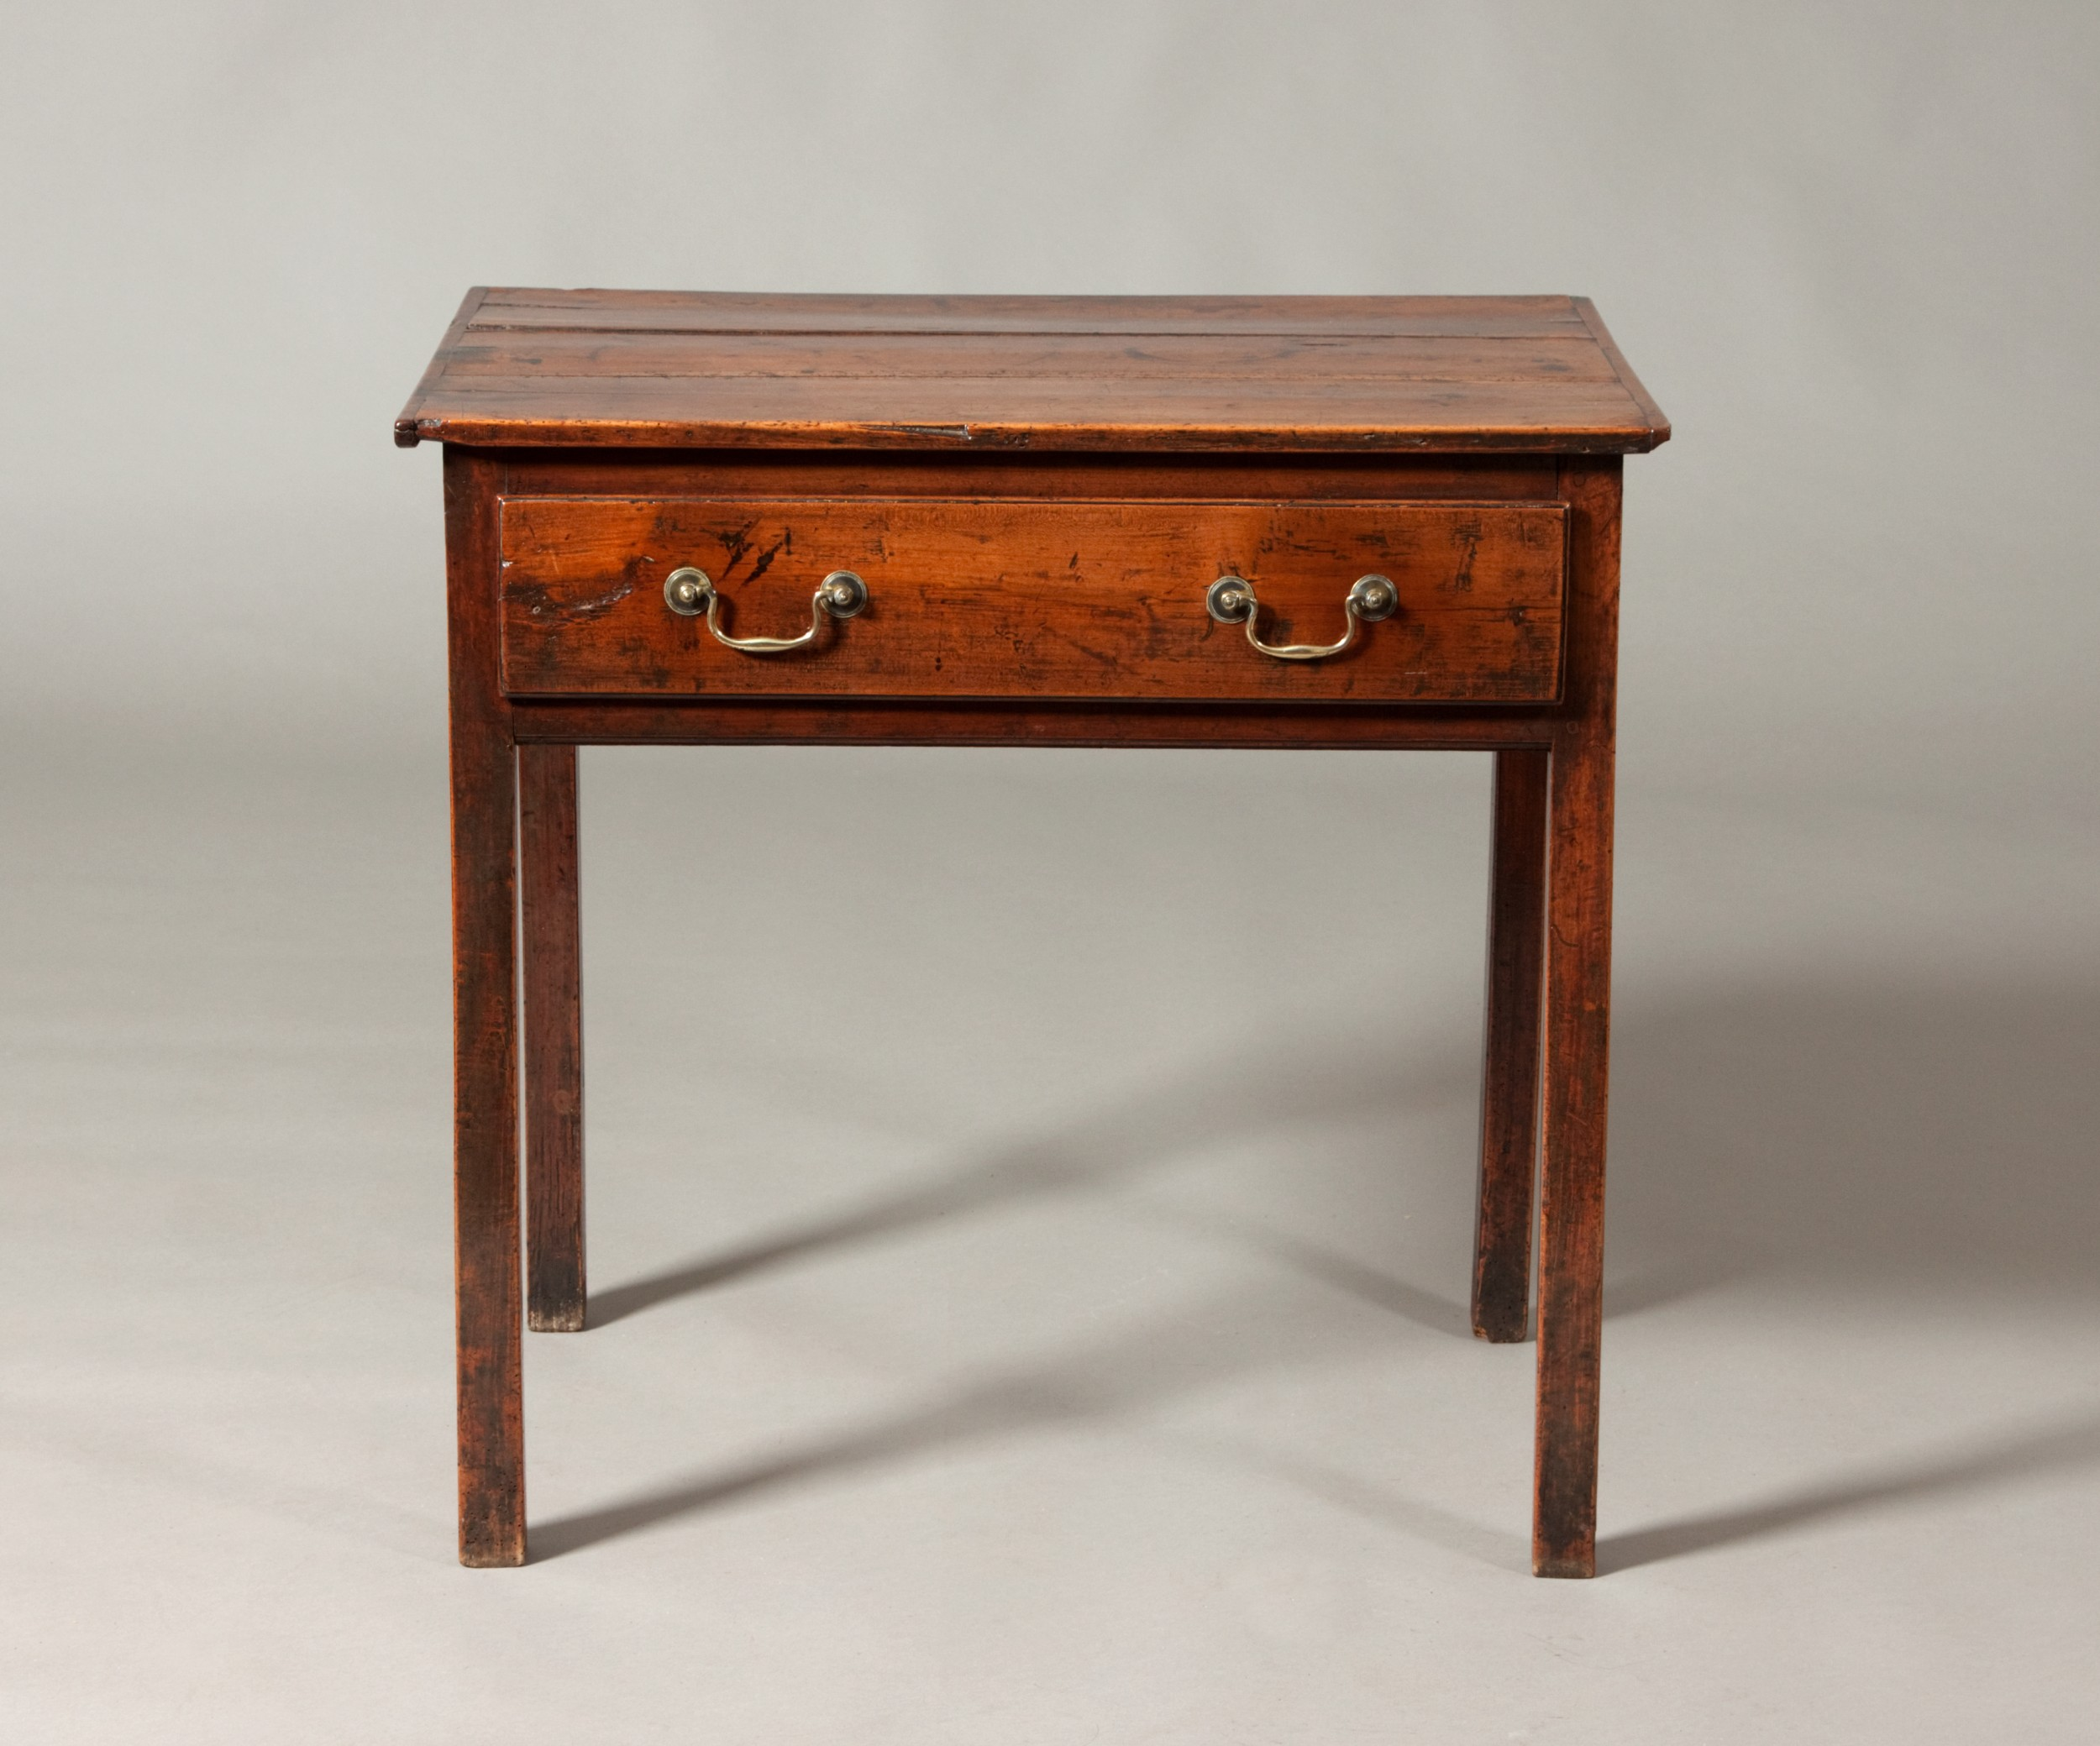 Tim bowen antiques carmarthenshire wales fruitwood side - Archives departementales 33 tables decennales ...